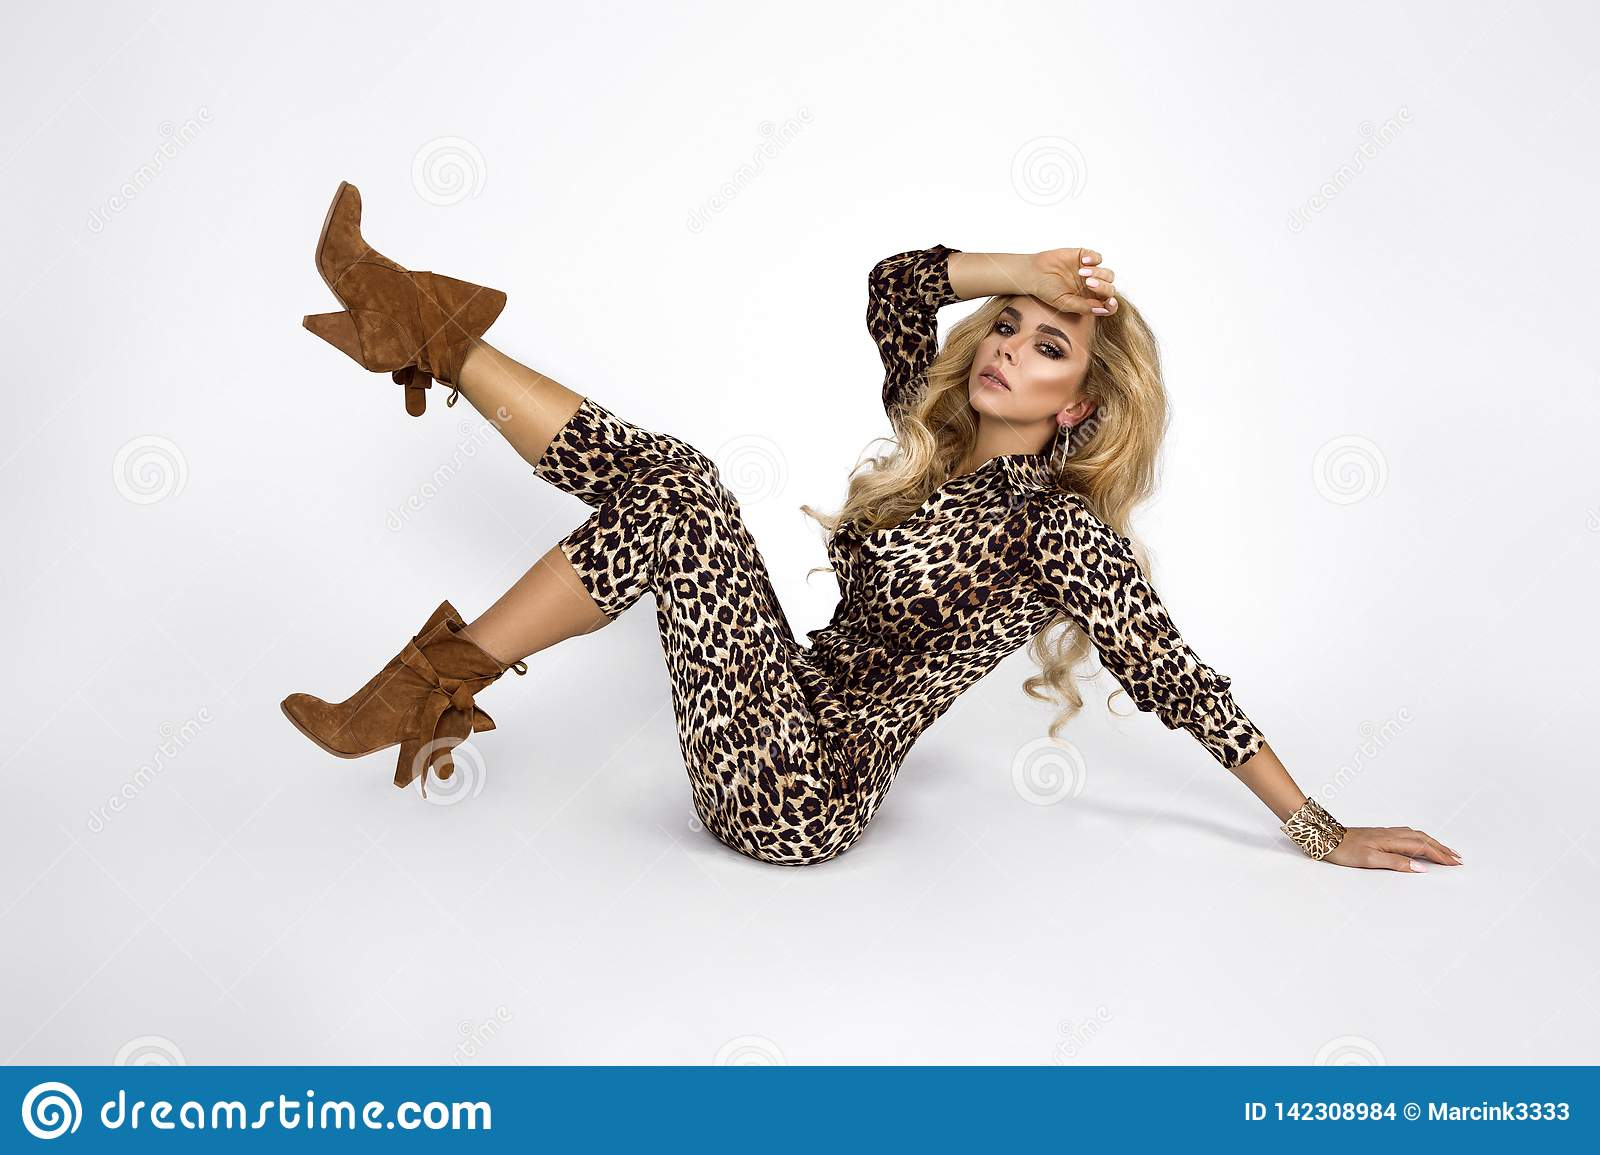 Fashion photo of a beautiful elegant young woman in a pretty jumpsuit with leopard animal print and boots posing over white